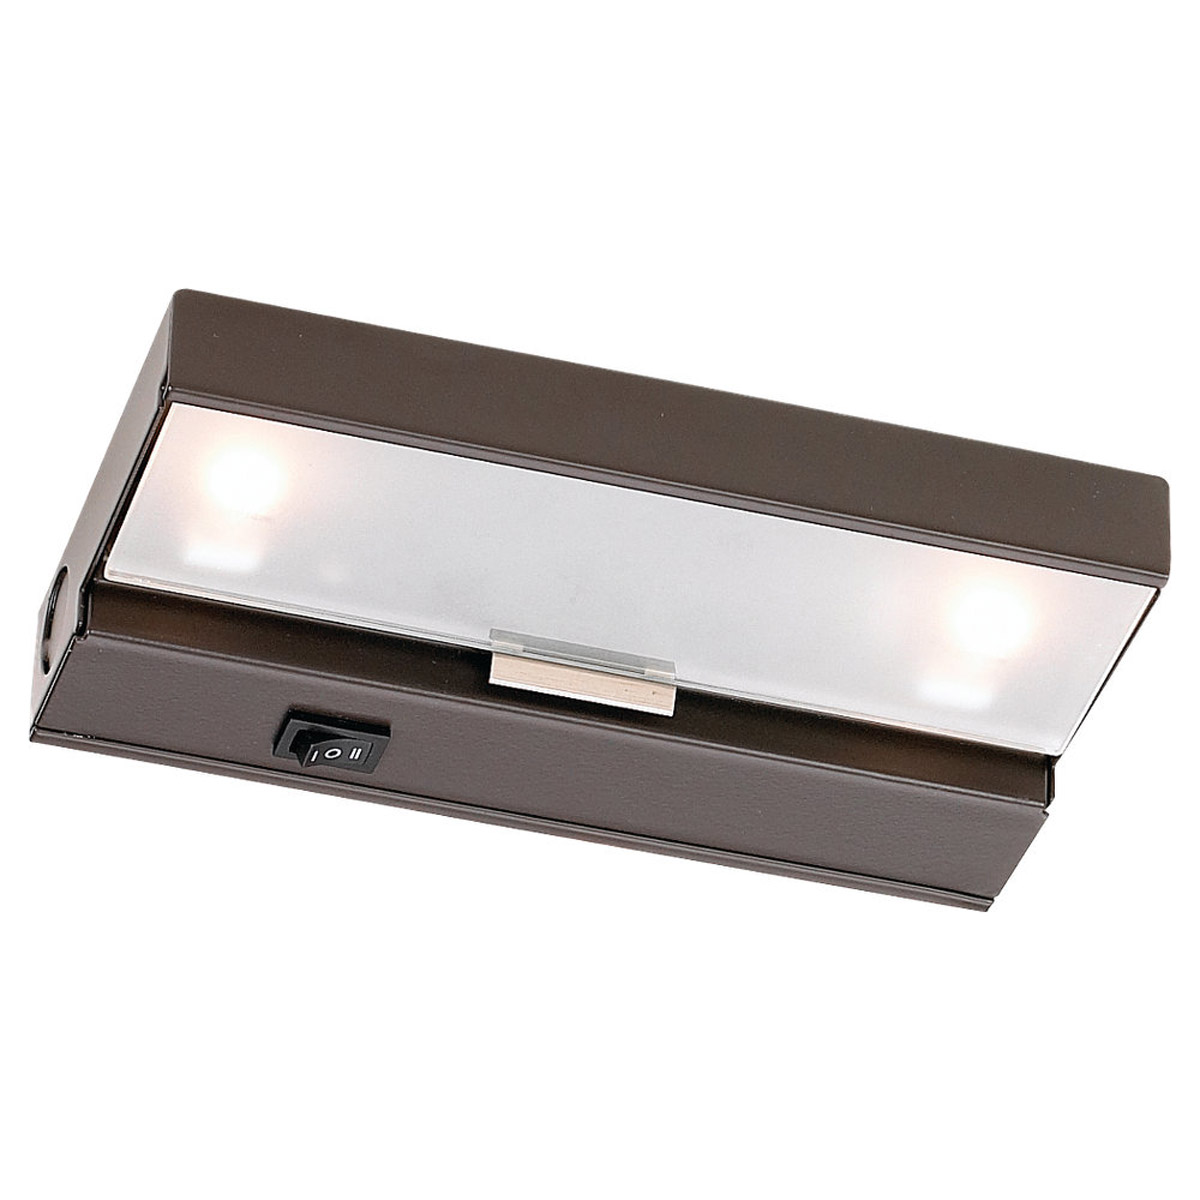 Sea Gull Lighting Undercabinet Lighting 2 Light Undercabinet Xenon in Antique Bronze 98018-71 photo